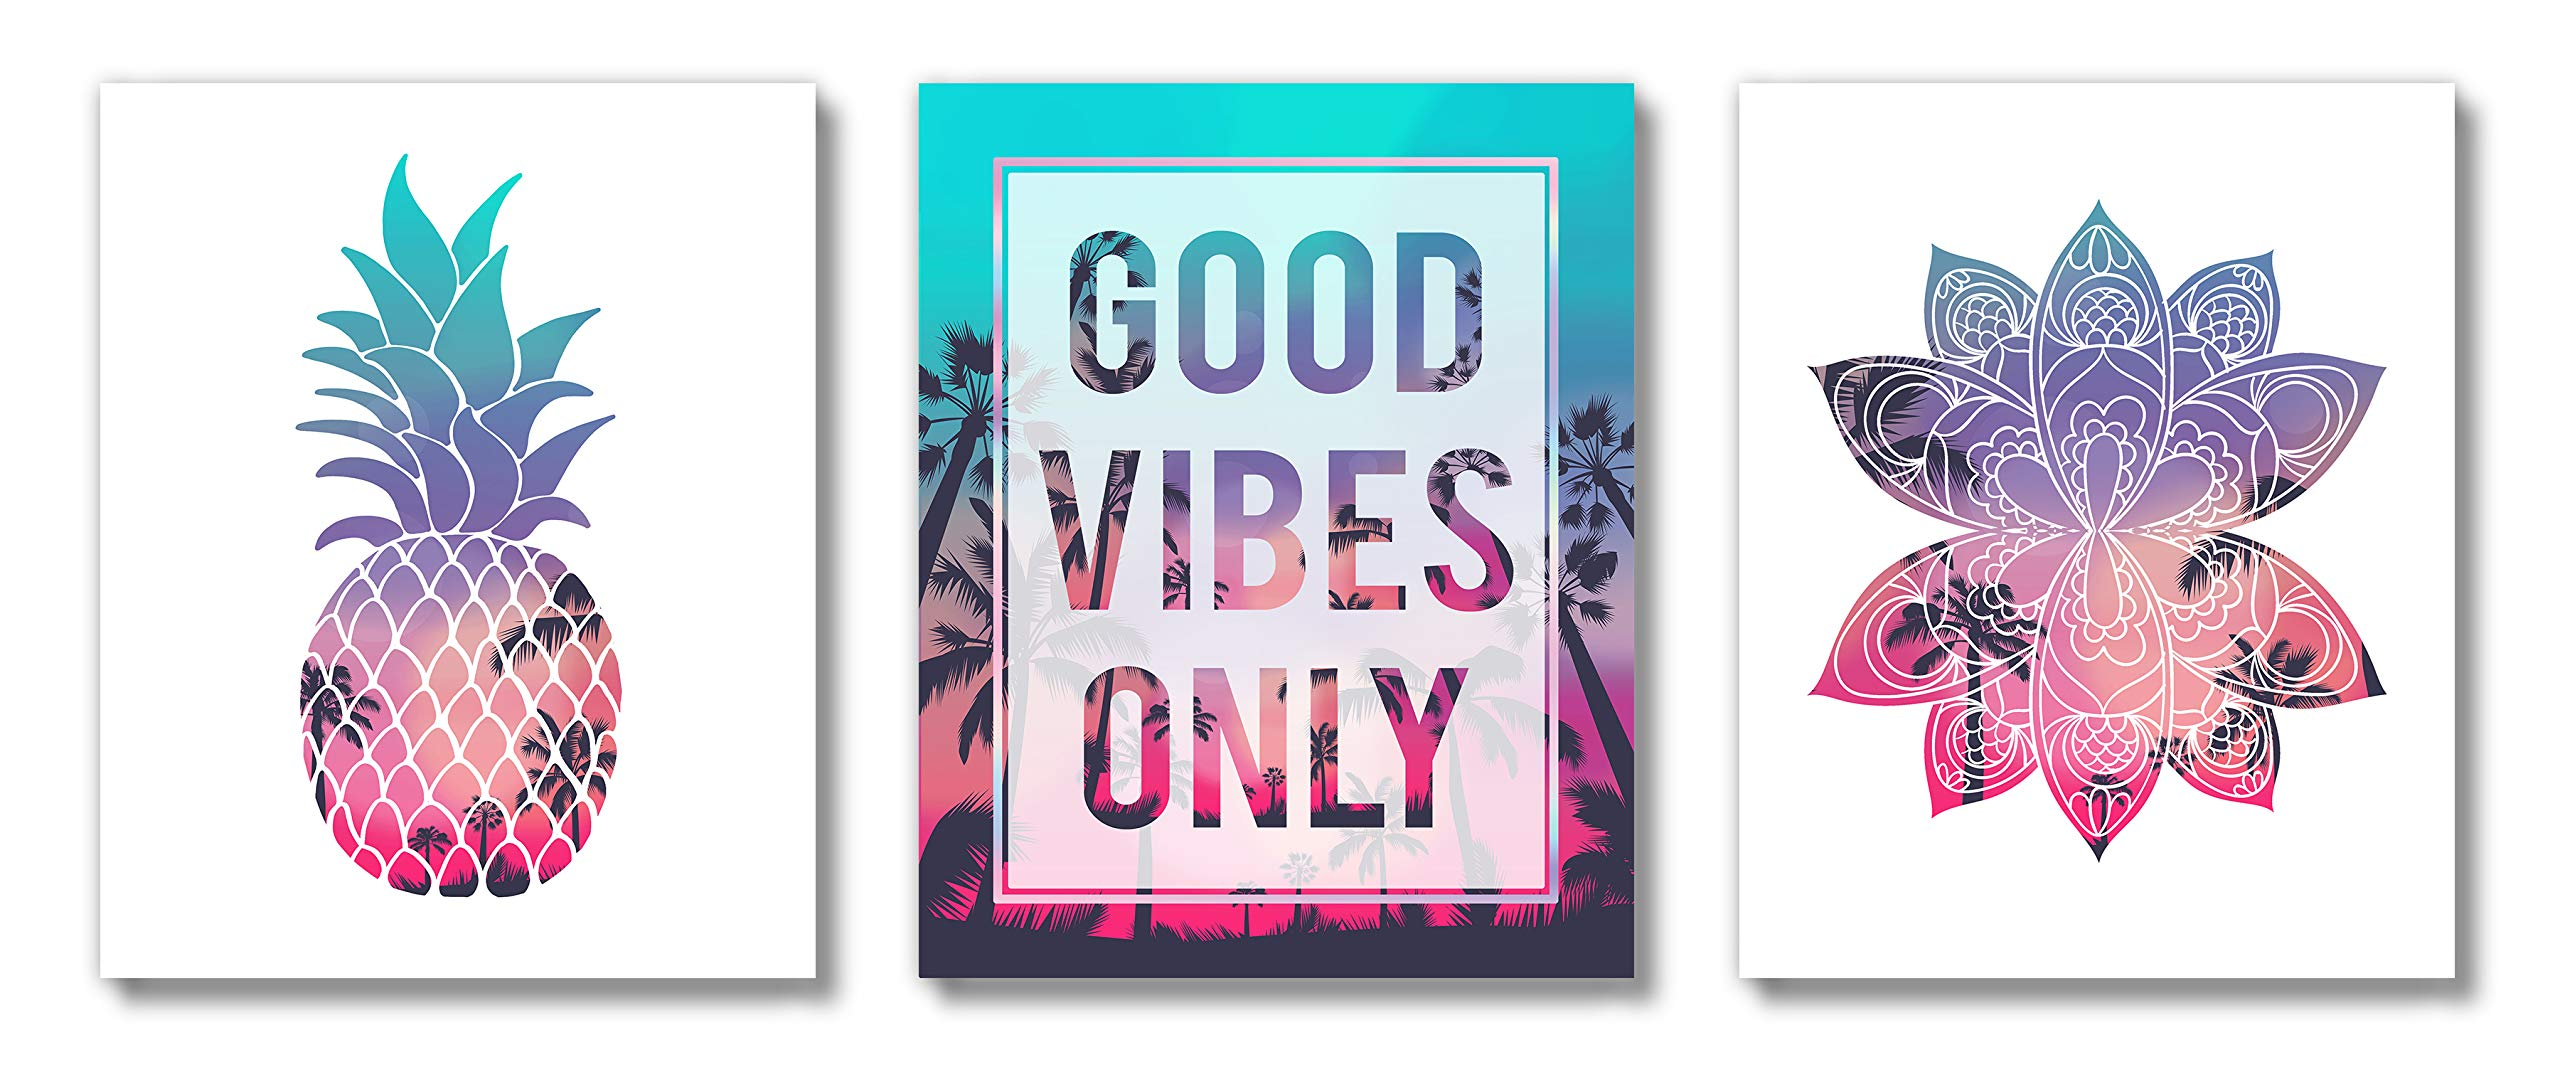 Brooke & Vine - Beach Teen Girl Room Wall Decor Art Prints - (UNFRAMED 8x10) VSCO Inspirational Wall Art, Motivational Quotes Posters for Kids, Tween Women Office Bedroom, Dorm, Cubicle, Desk (Good Vibes Only)